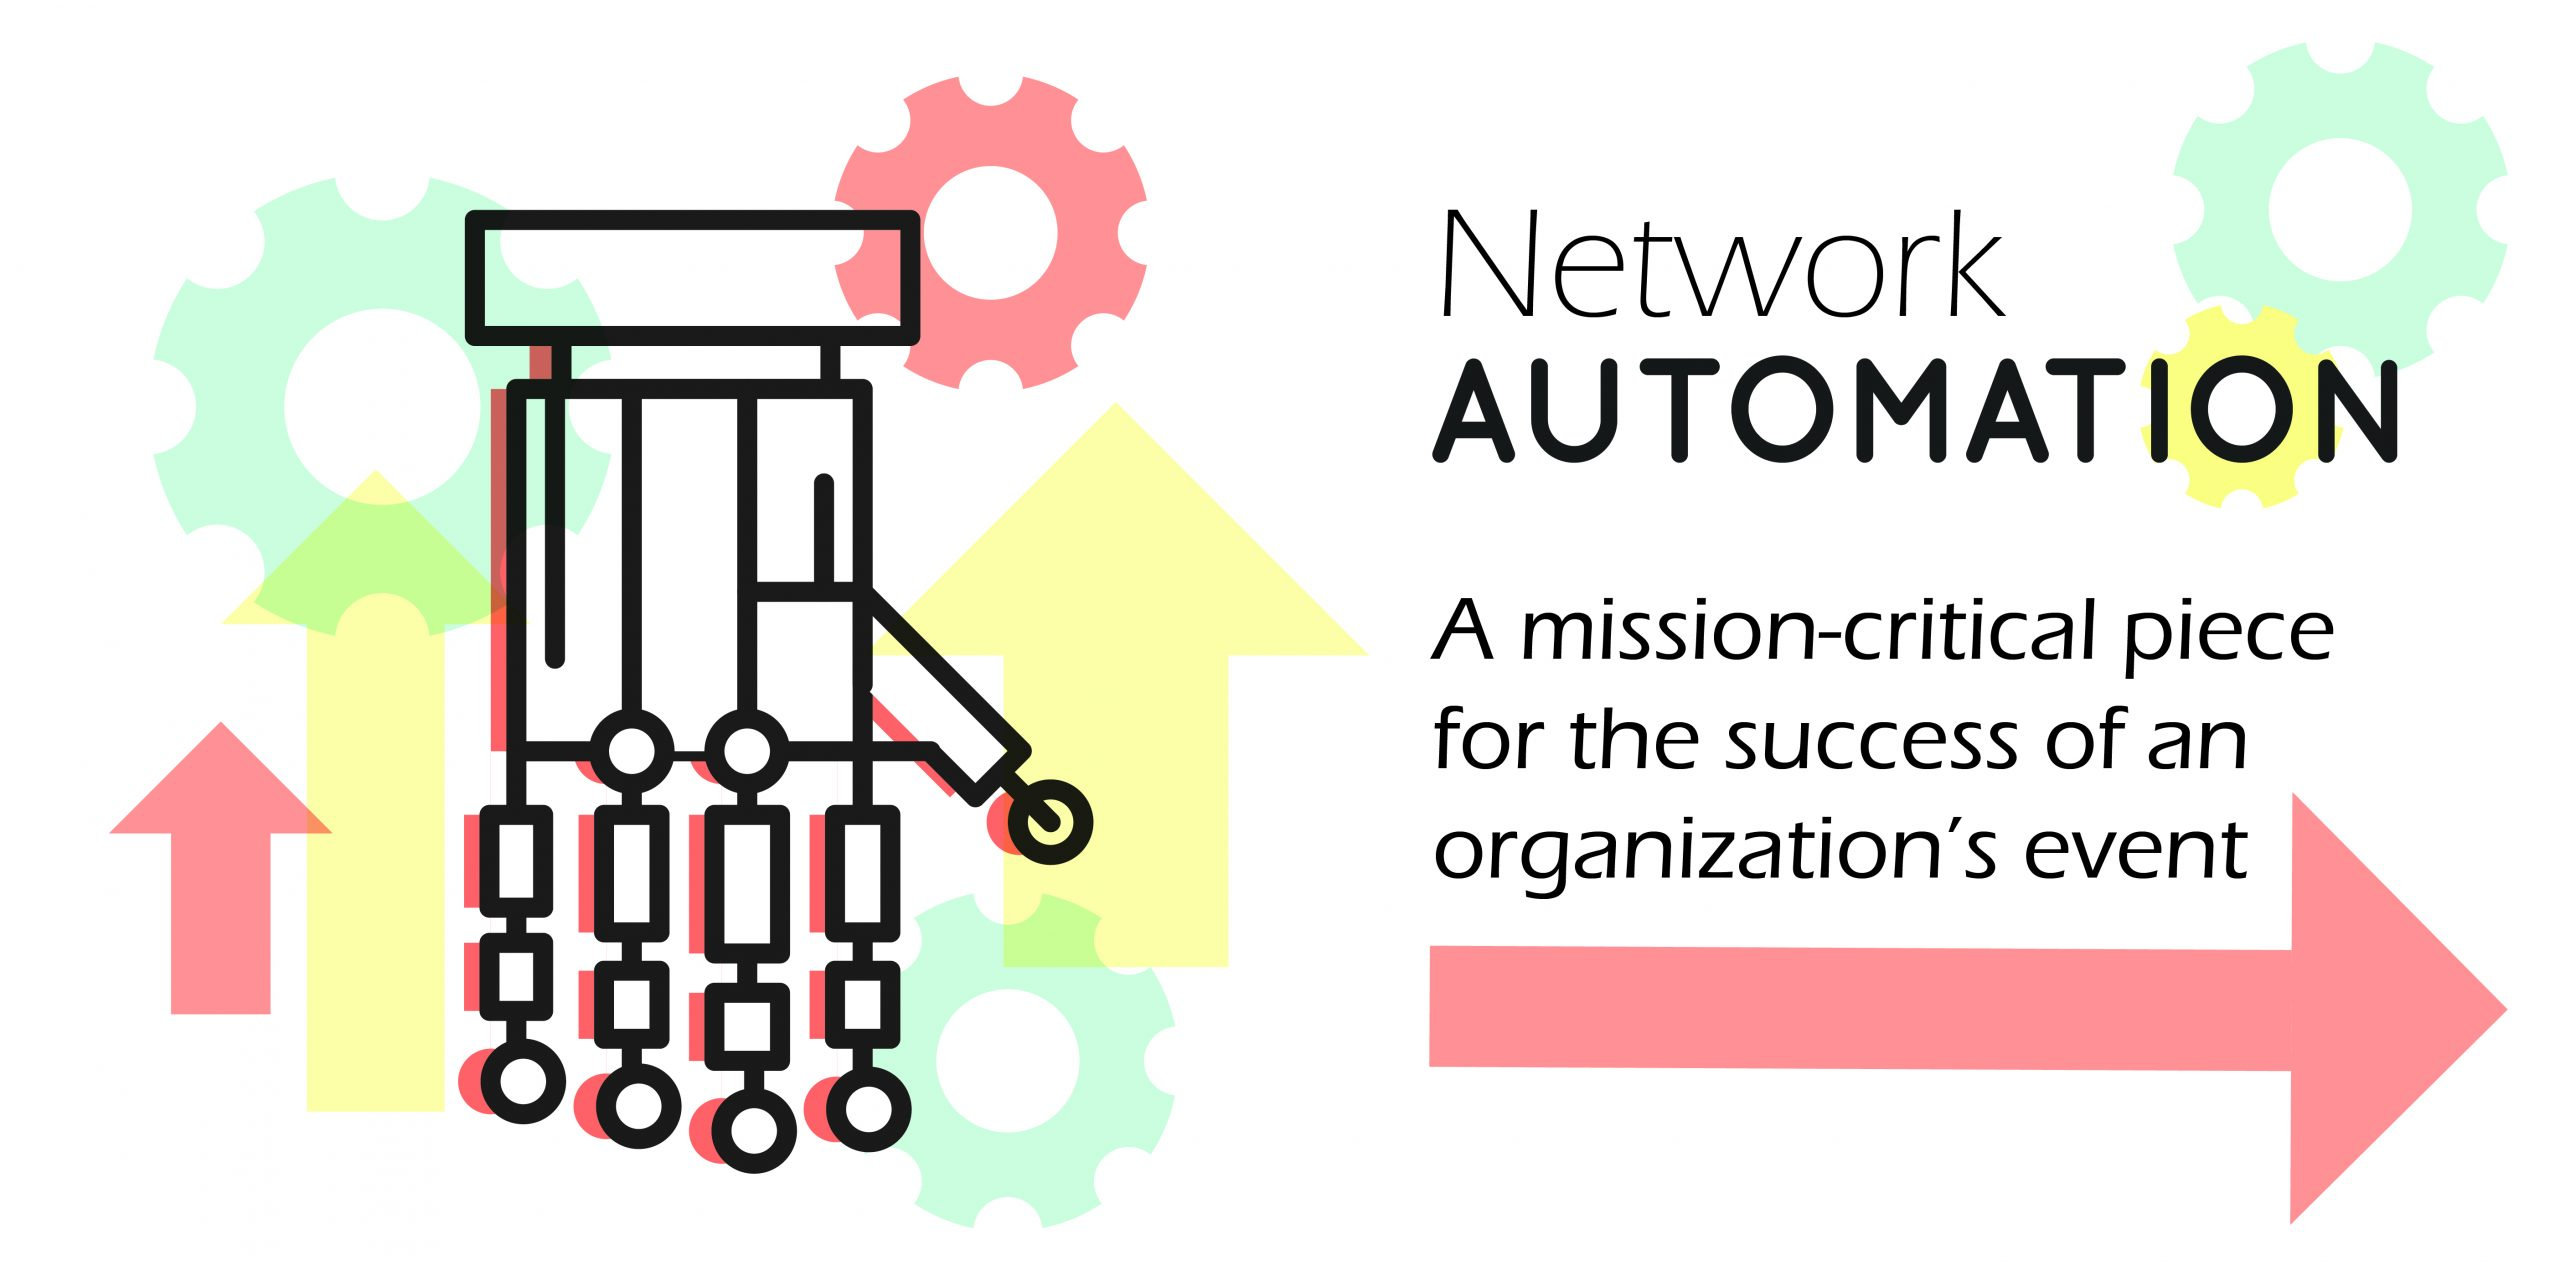 Network Automation – A Mission-Critical Piece for Success